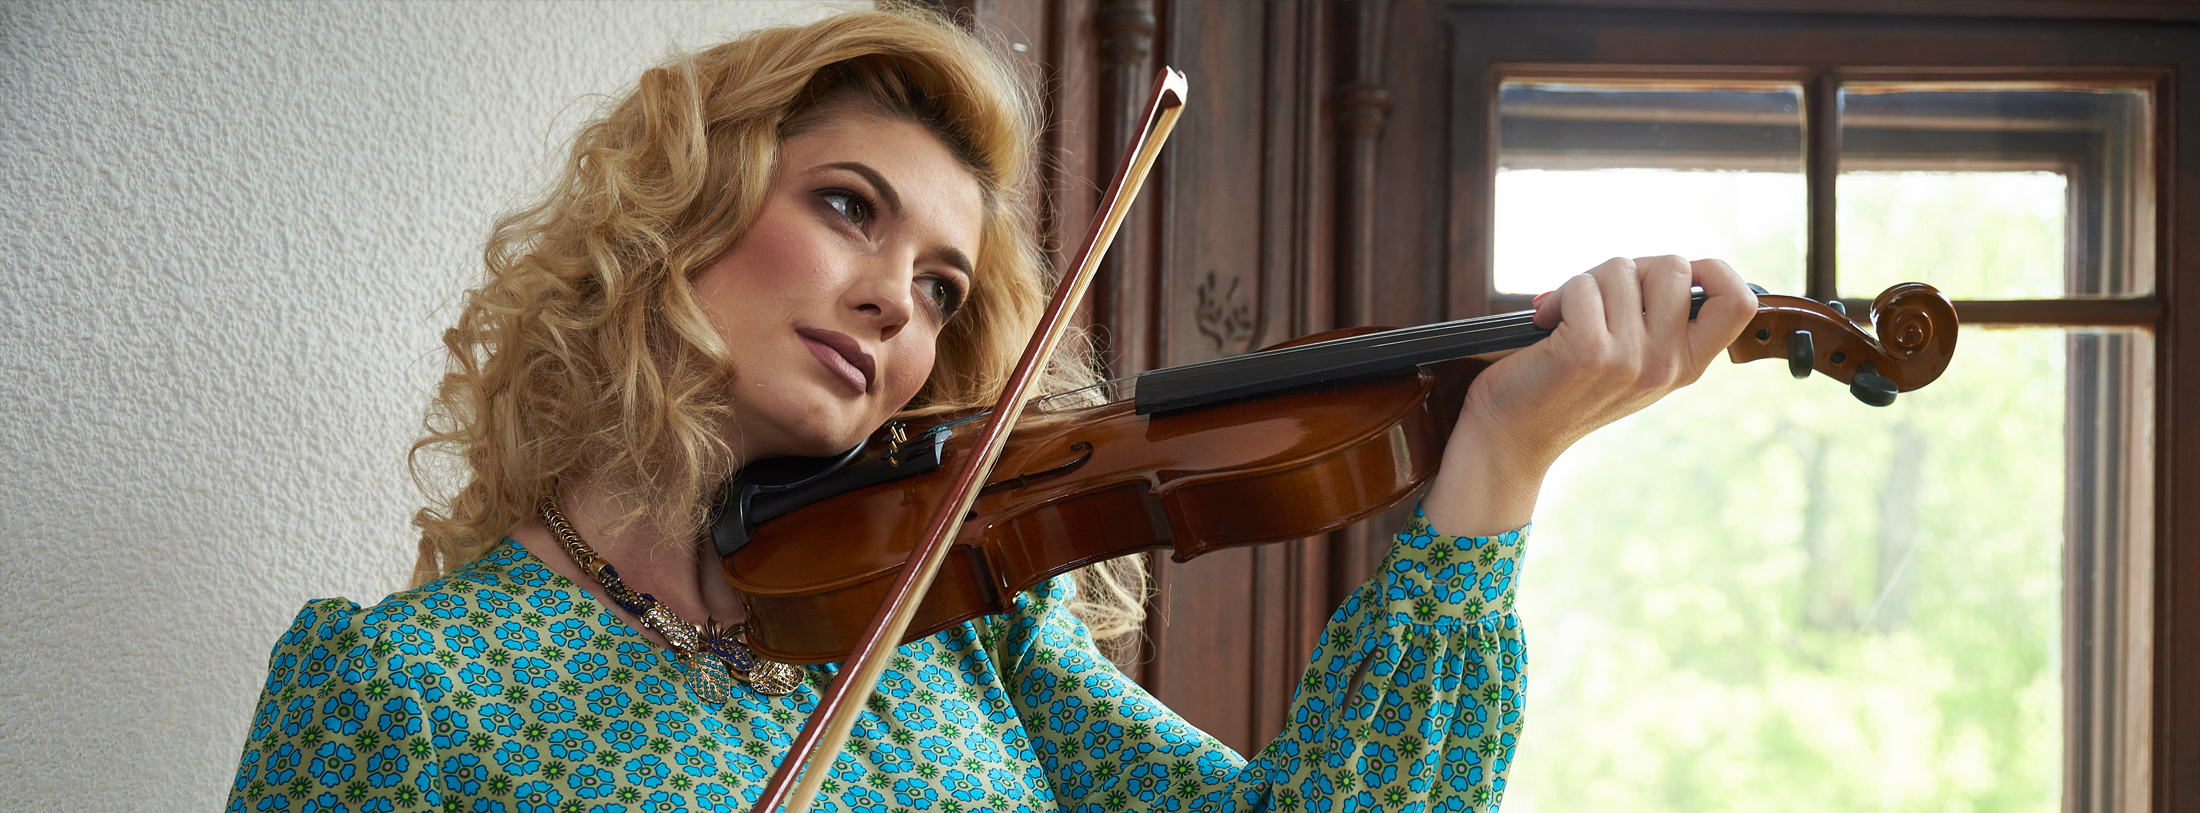 Woman wearing the Brigitte silk crepe jumpsuit with floral print and playing the violin